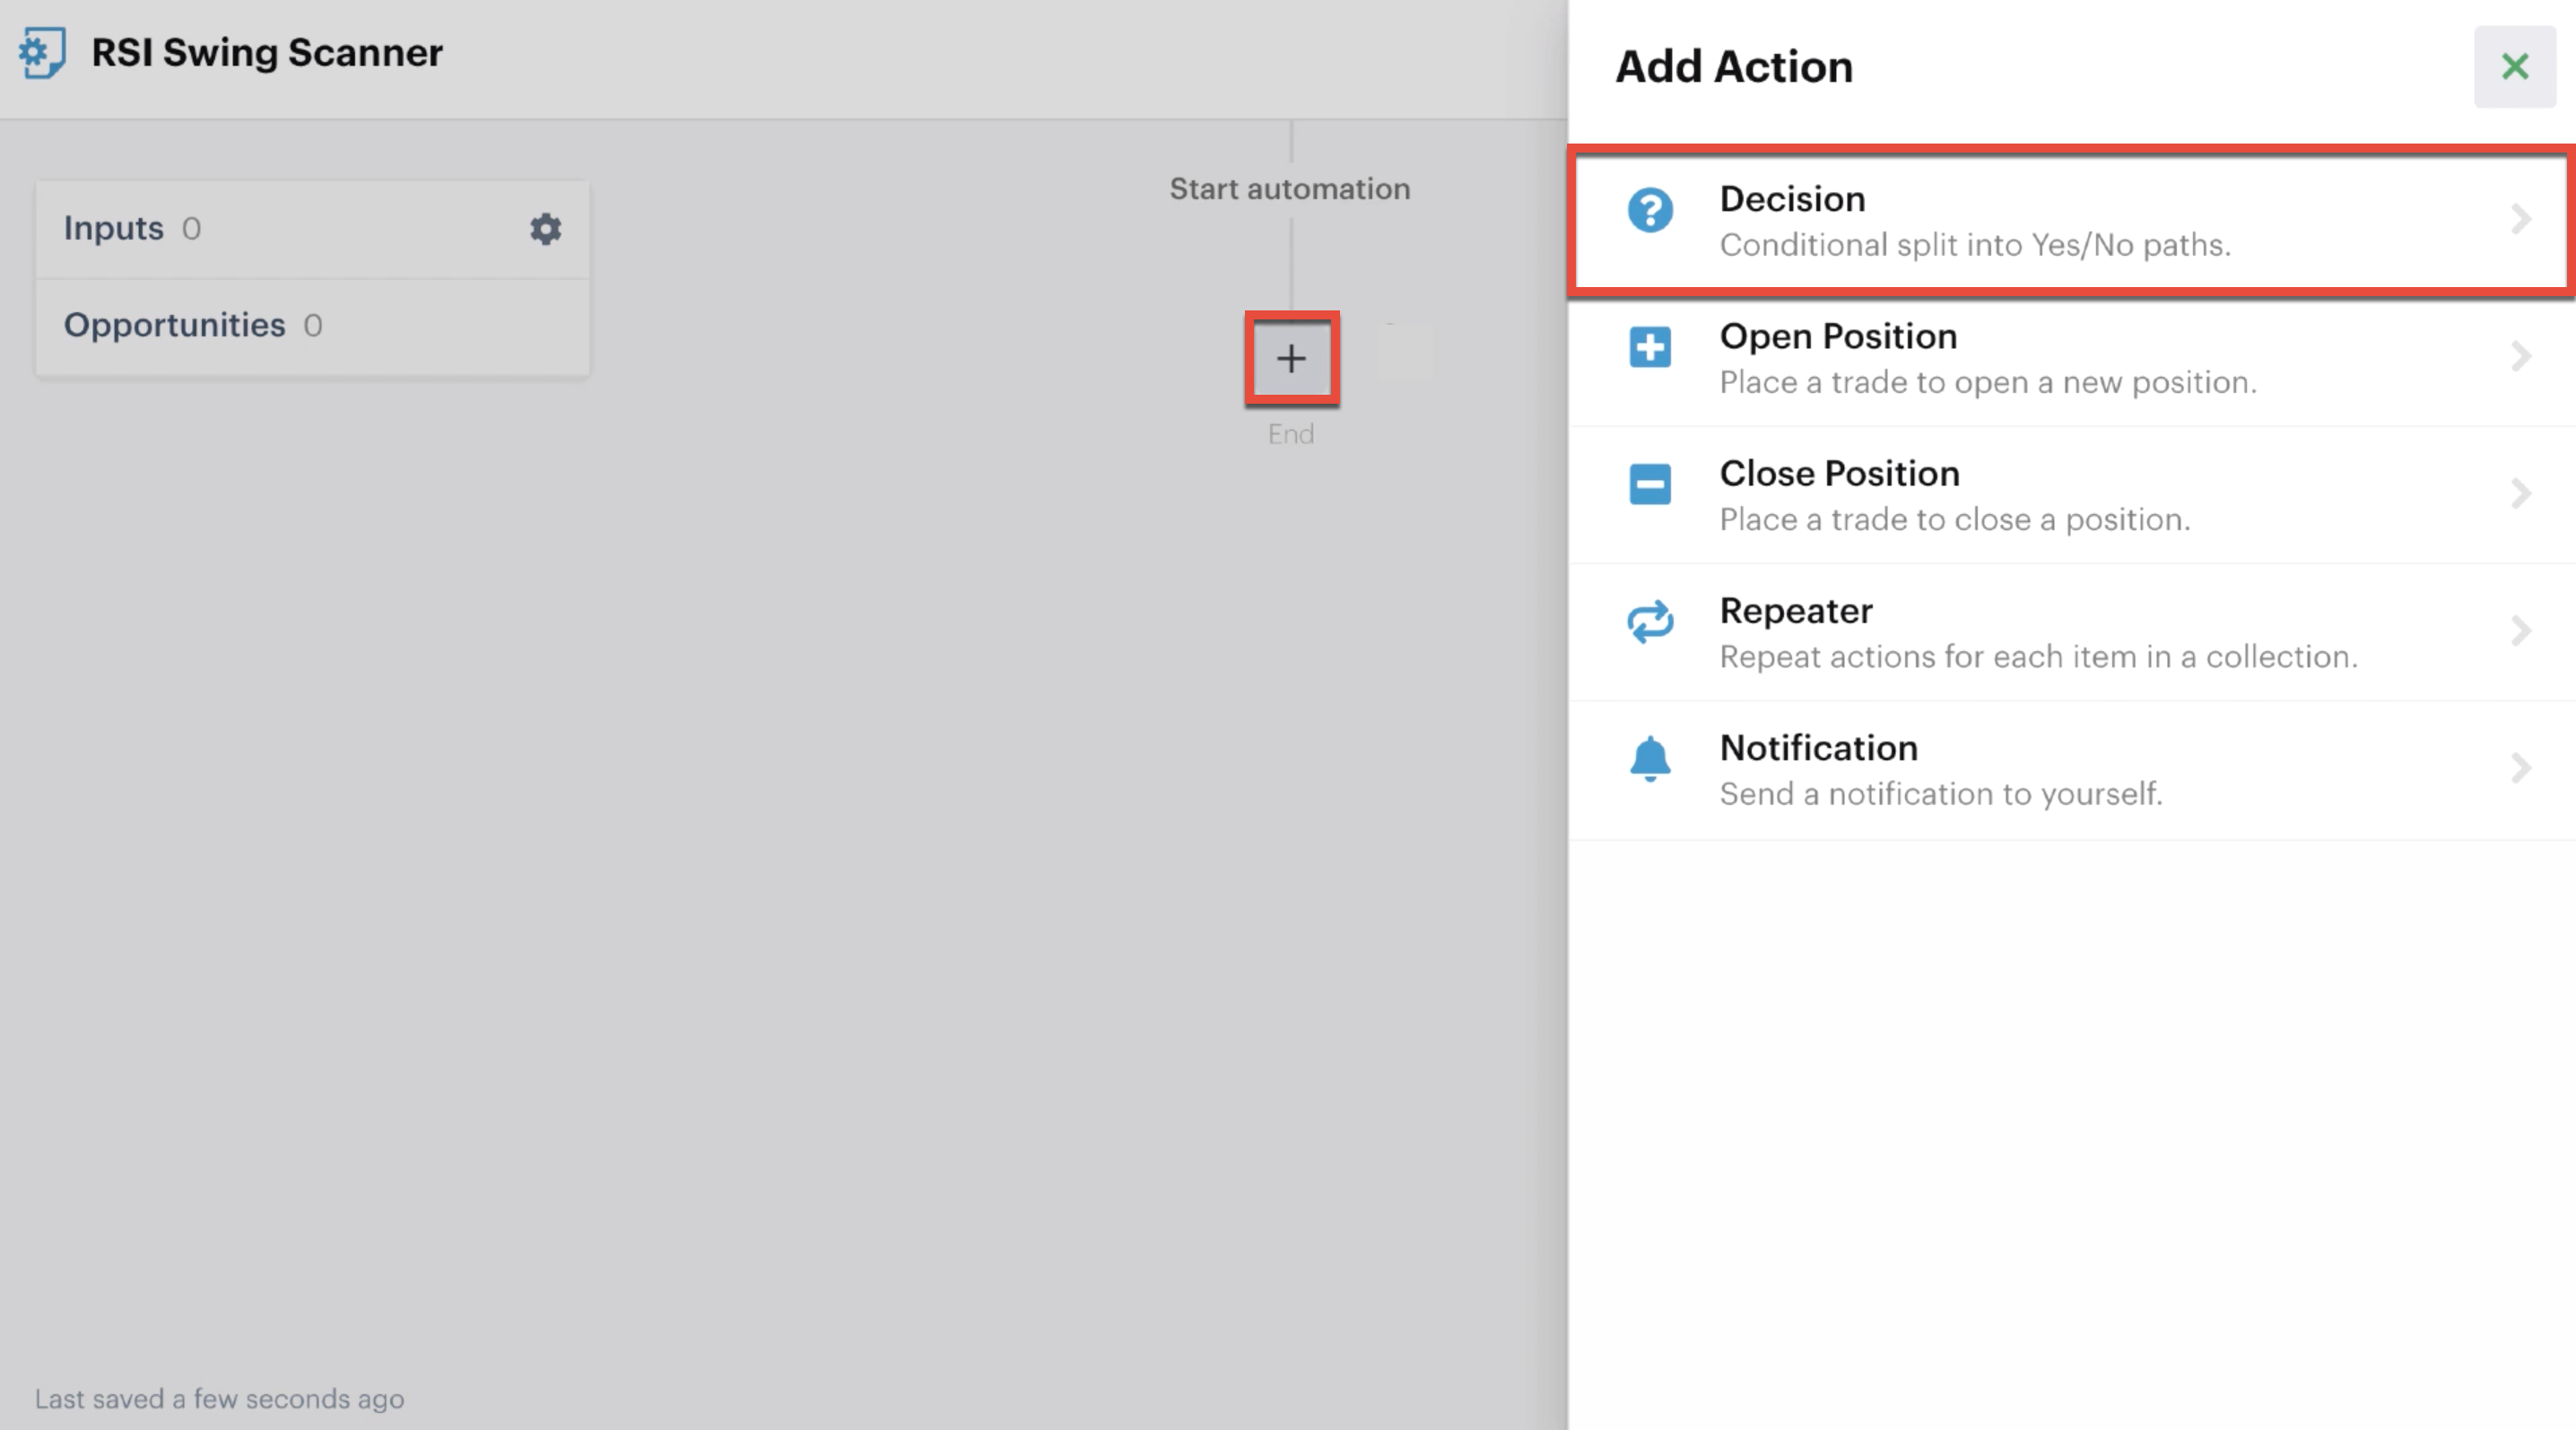 Add a decision action to the automation editor